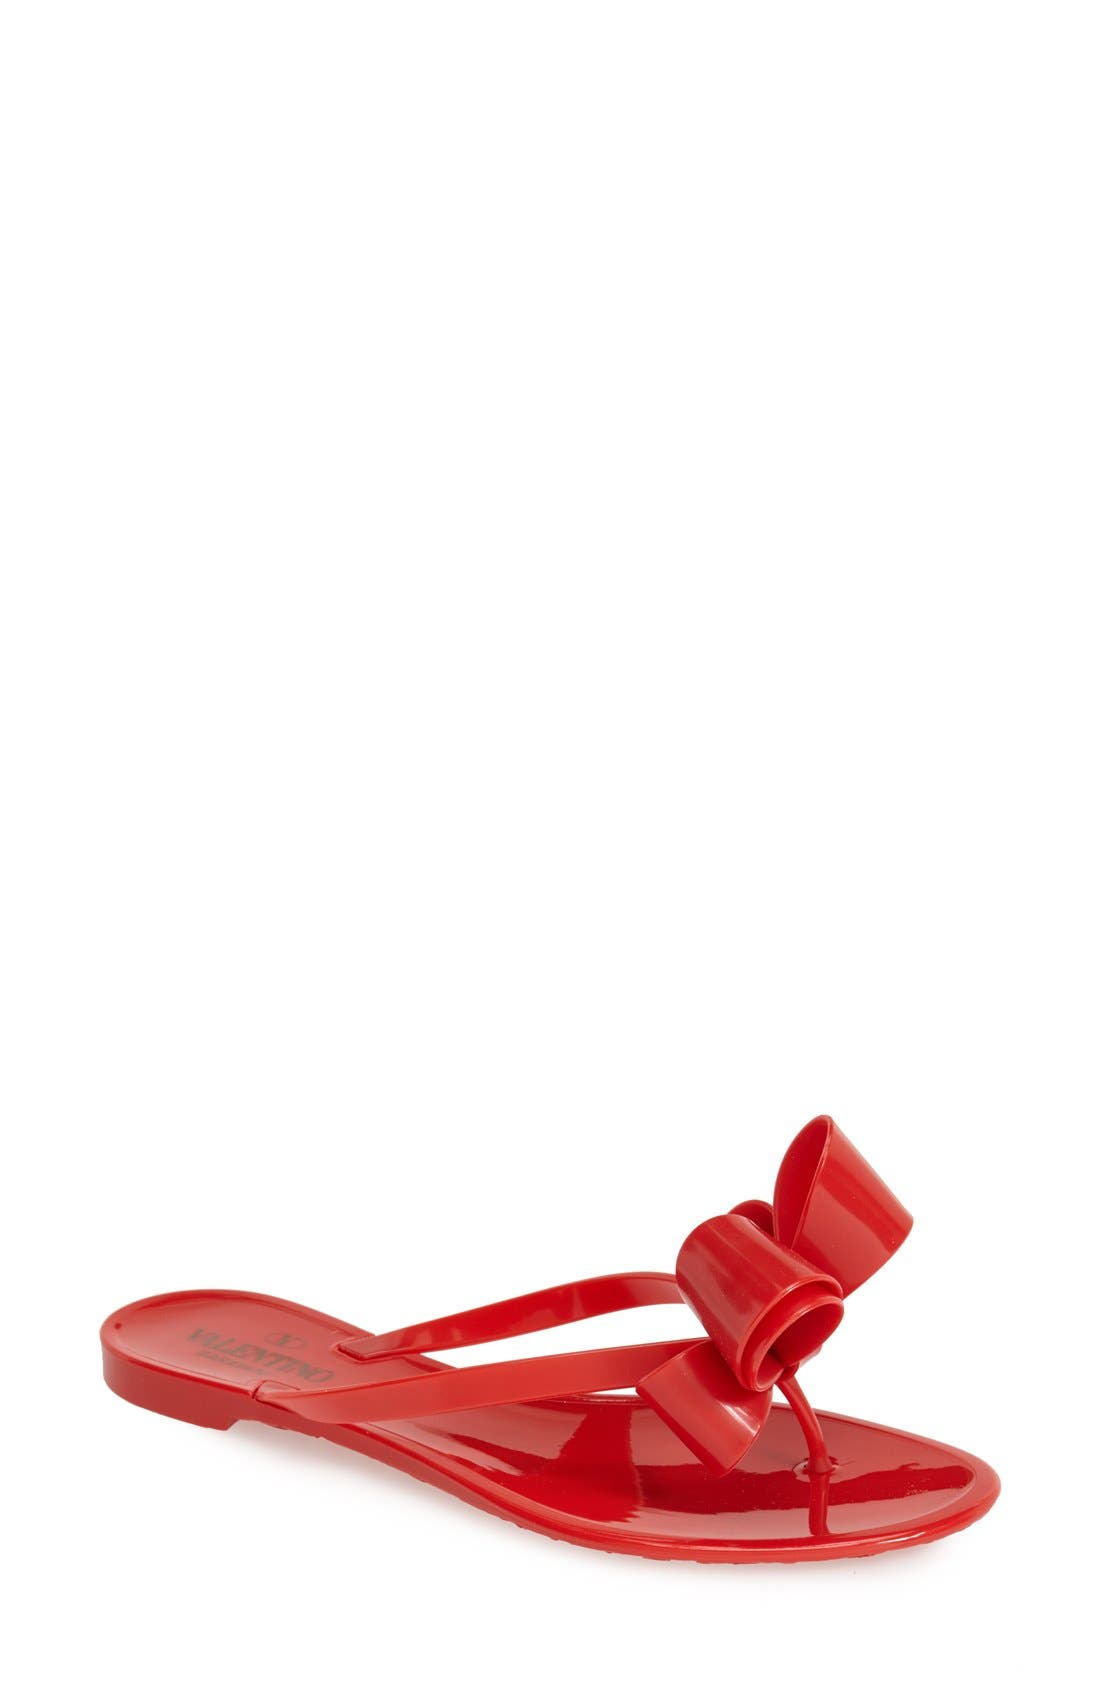 Alternate Image 1 Selected - VALENTINO GARAVANI Couture Bow Thong Sandal (Women)